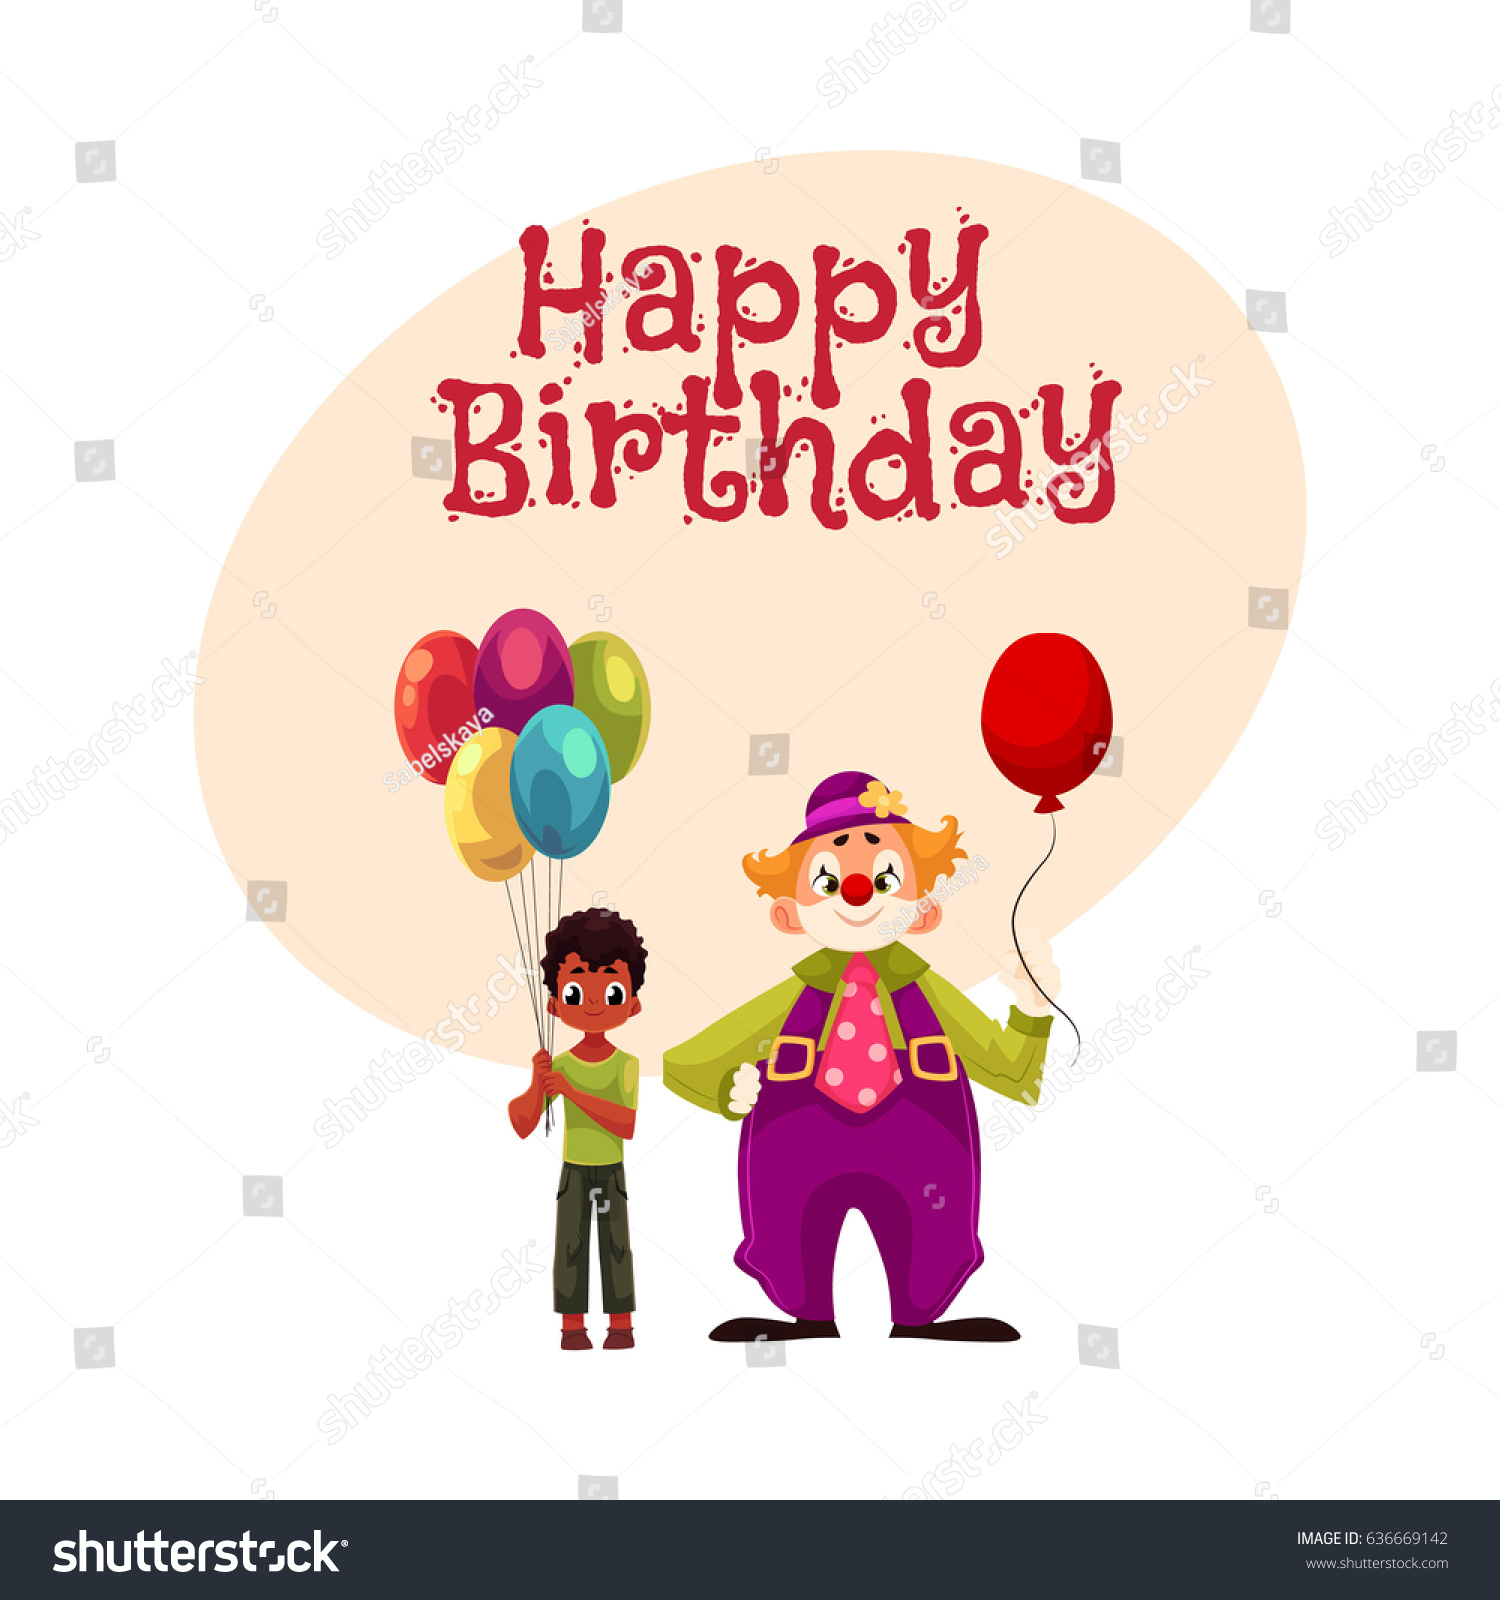 Happy birthday vector greeting card poster stock vector 636669142 happy birthday vector greeting card poster banner design with black african american boy kristyandbryce Images